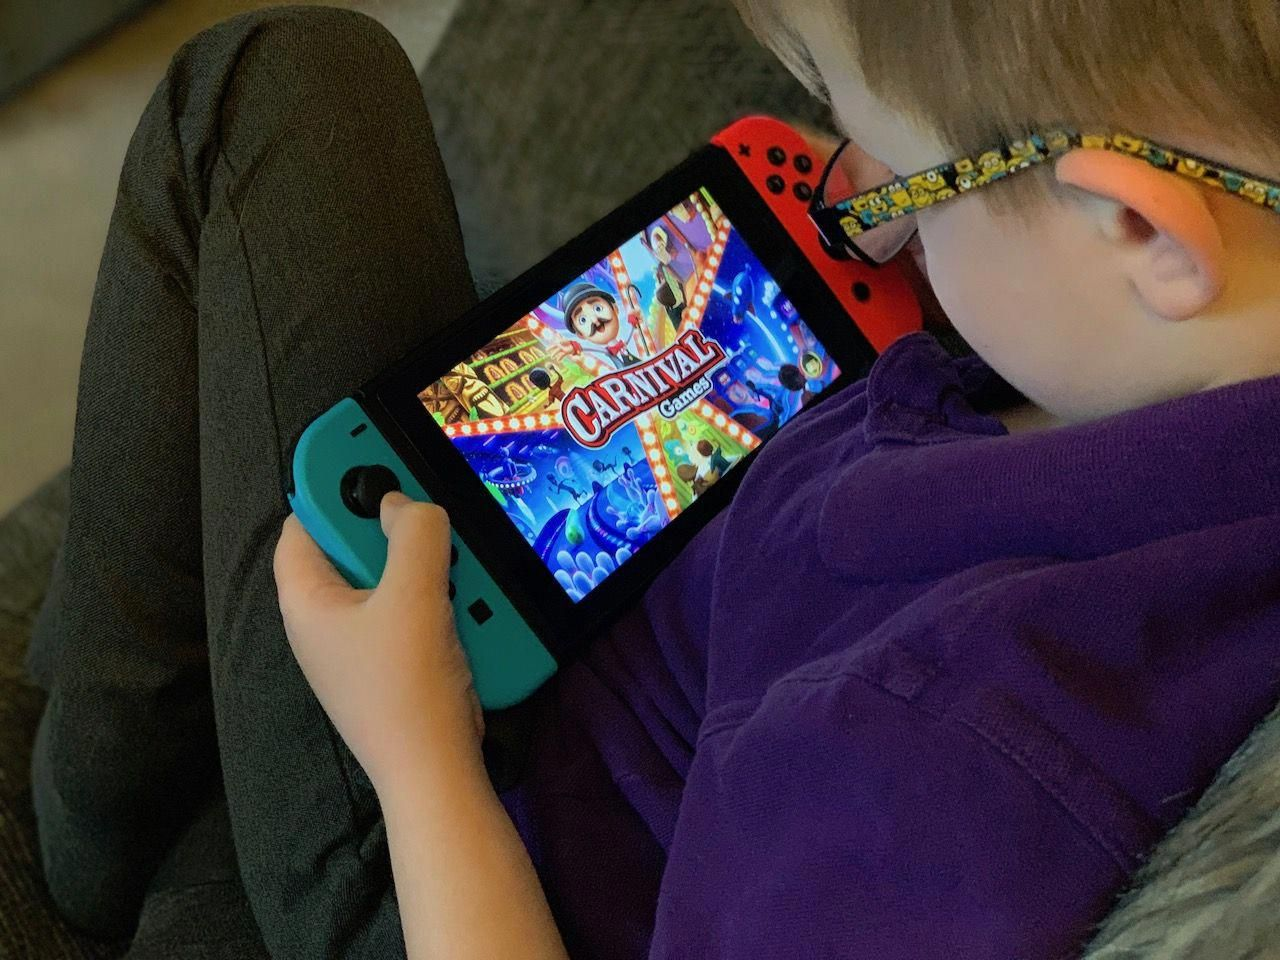 Carnival Games On Nintendo Switch A Review Nintendoswitch Carnival Games All Video Games Games For Kids